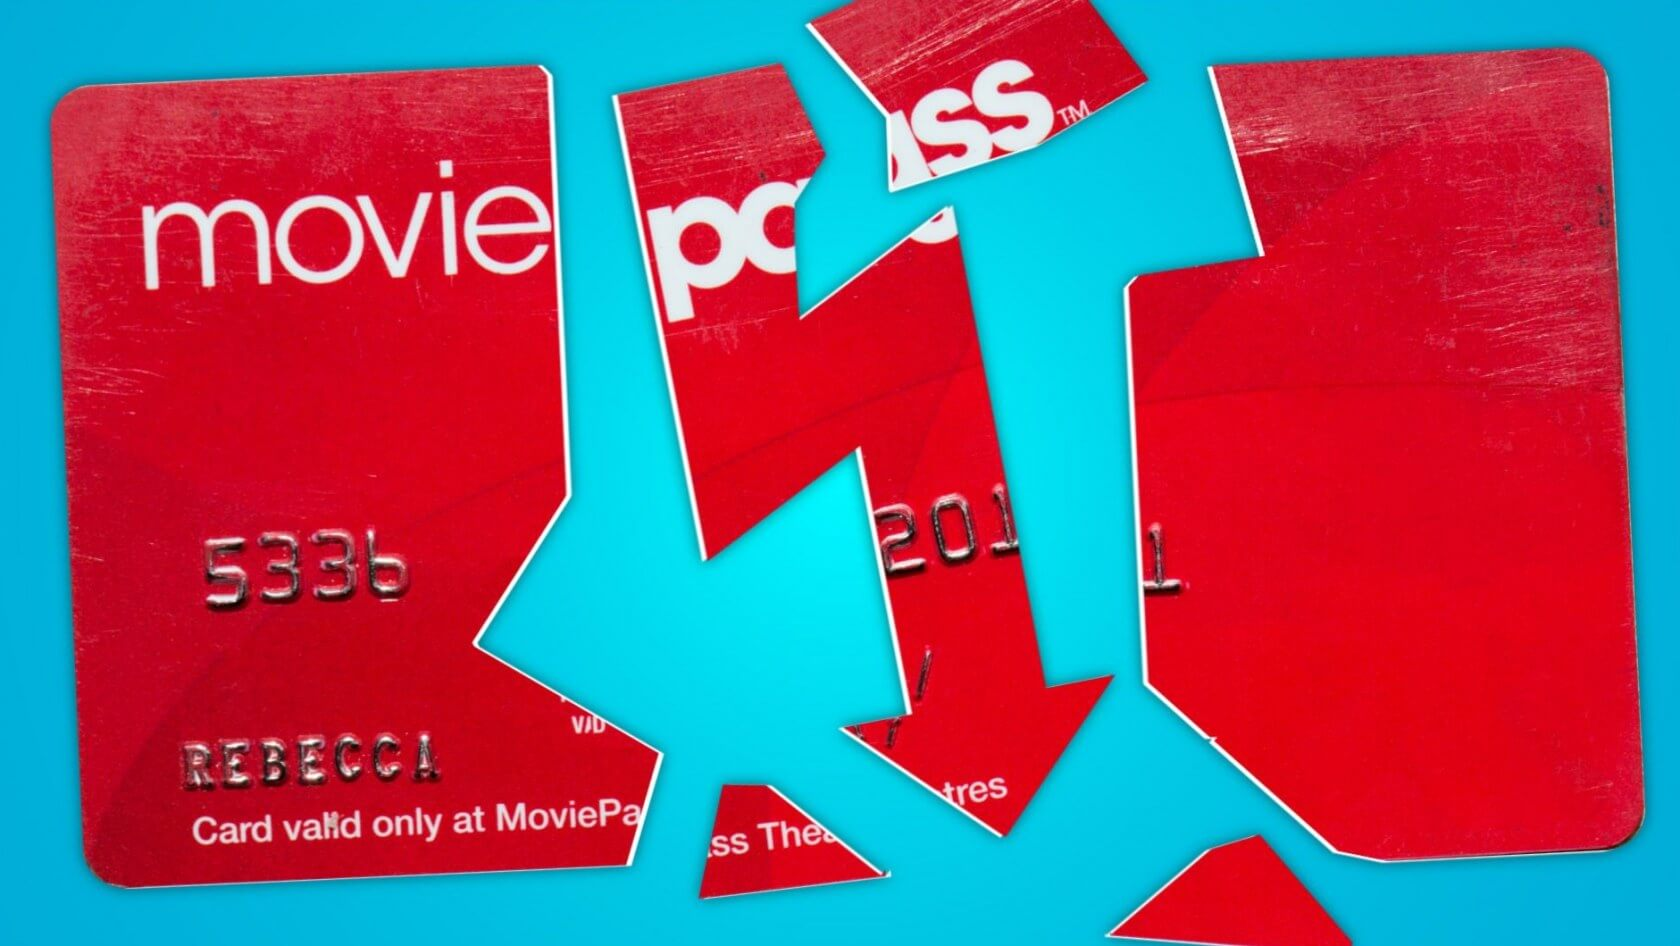 MoviePass hopes to right the ship by launching three new subscription tiers in 2019